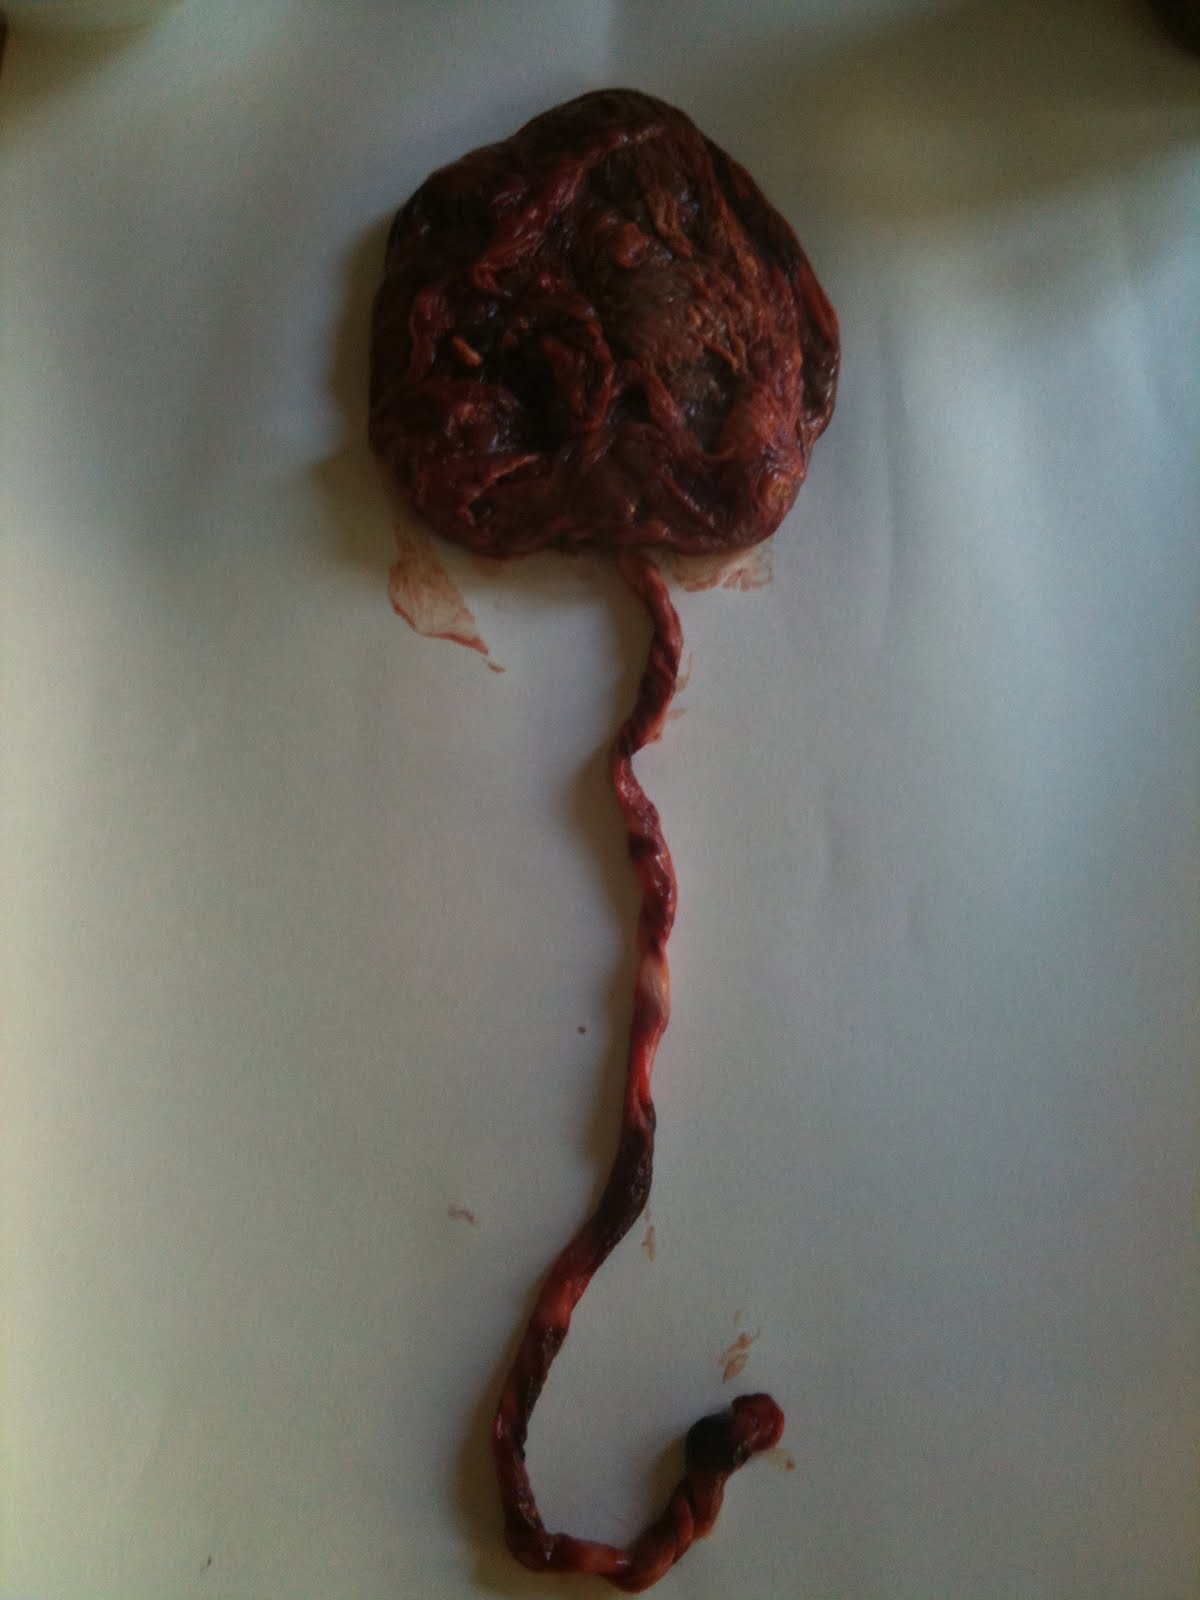 On Being a Mother: The placenta is coming out of the freezer